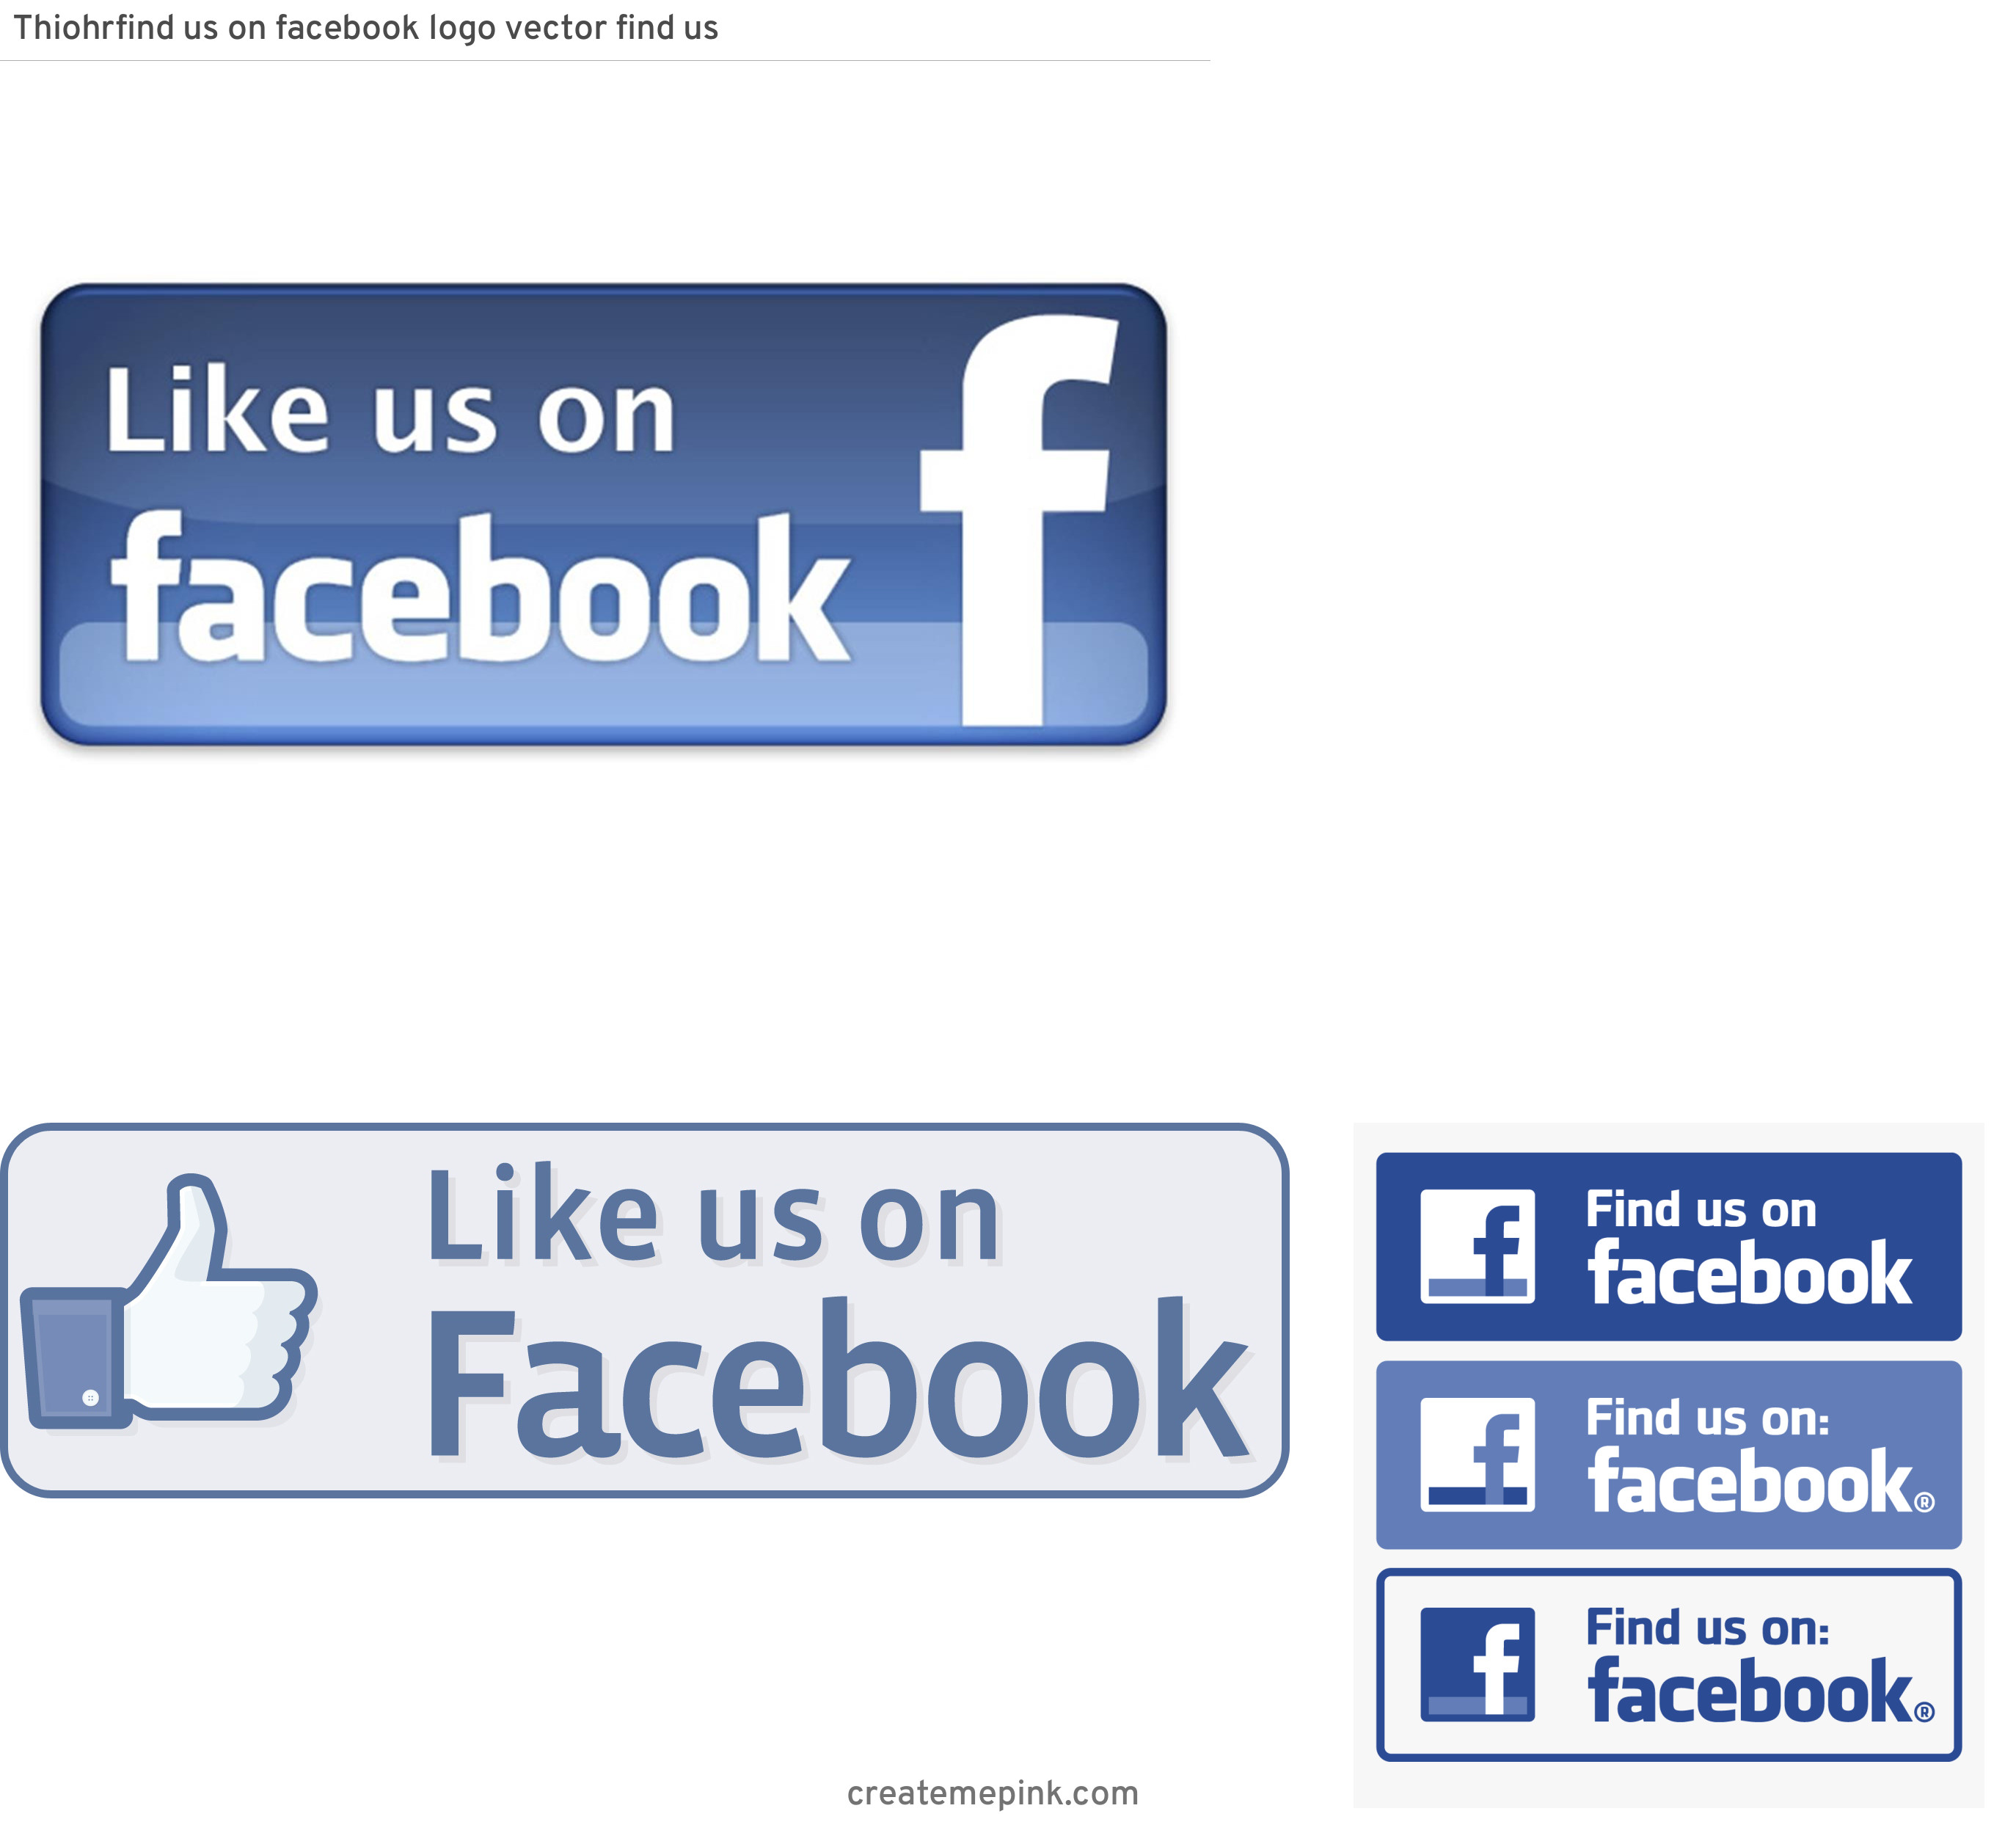 Official Like Us On Facebook Logo Vector: Thiohrfind Us On Facebook Logo Vector Find Us